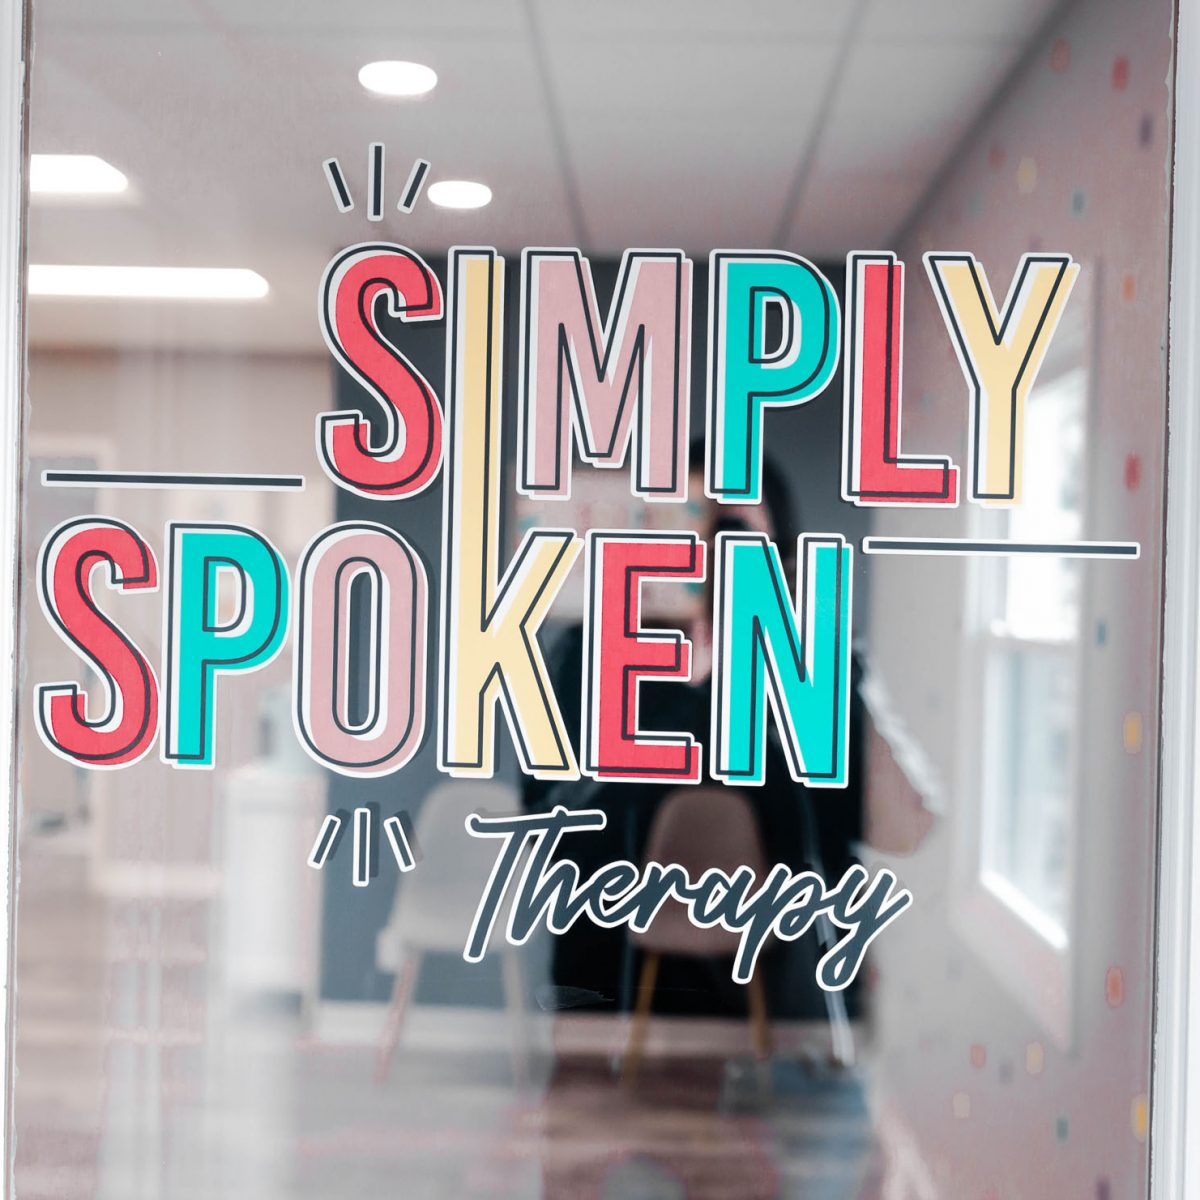 speech therapist kenosha, simply spoken therapy, kenosha speech therapy